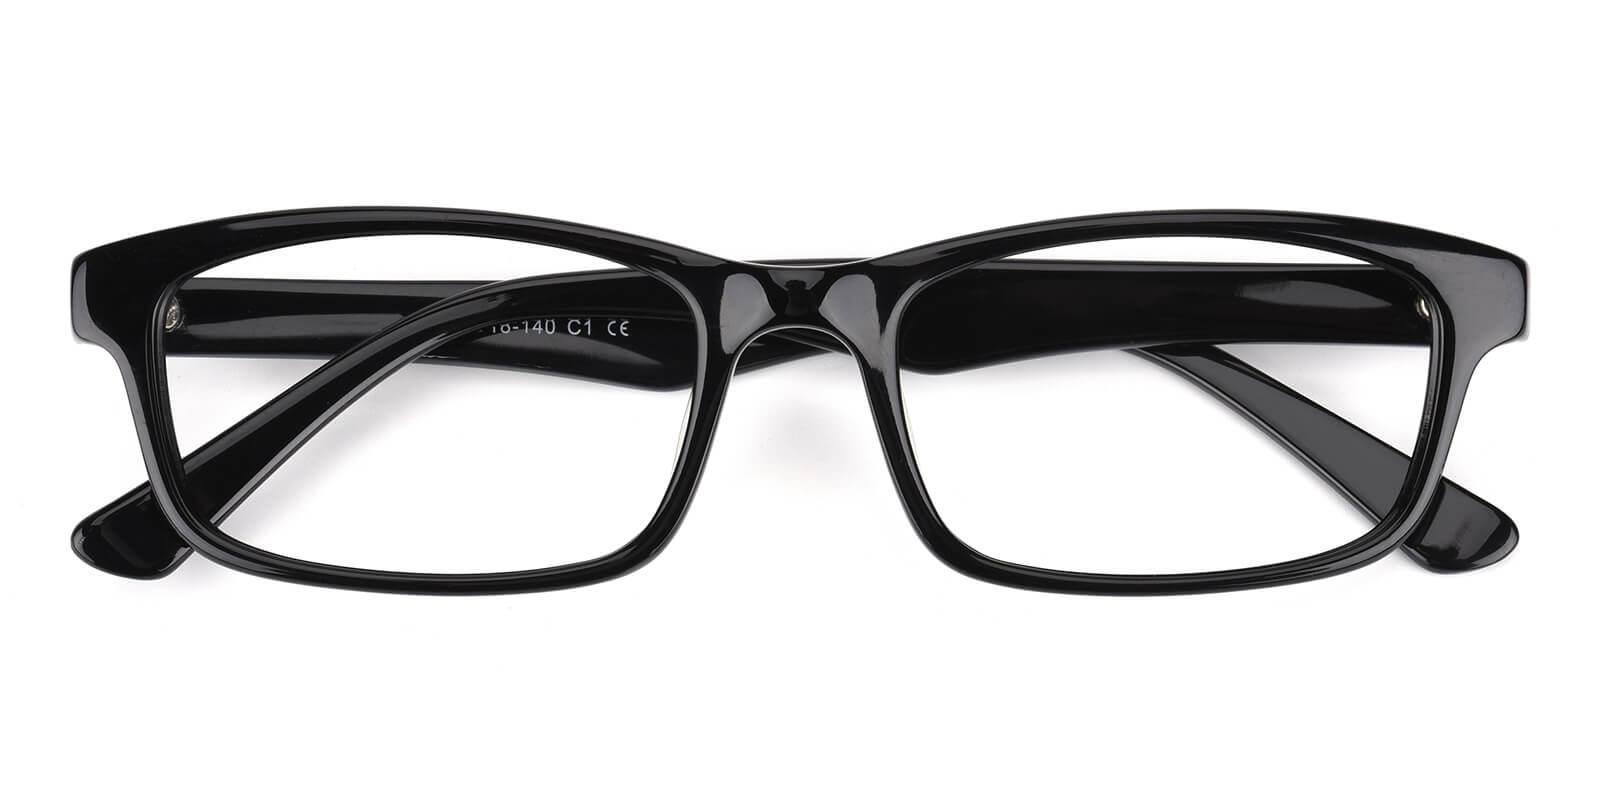 Katric-Black-Rectangle-Acetate-Eyeglasses-detail